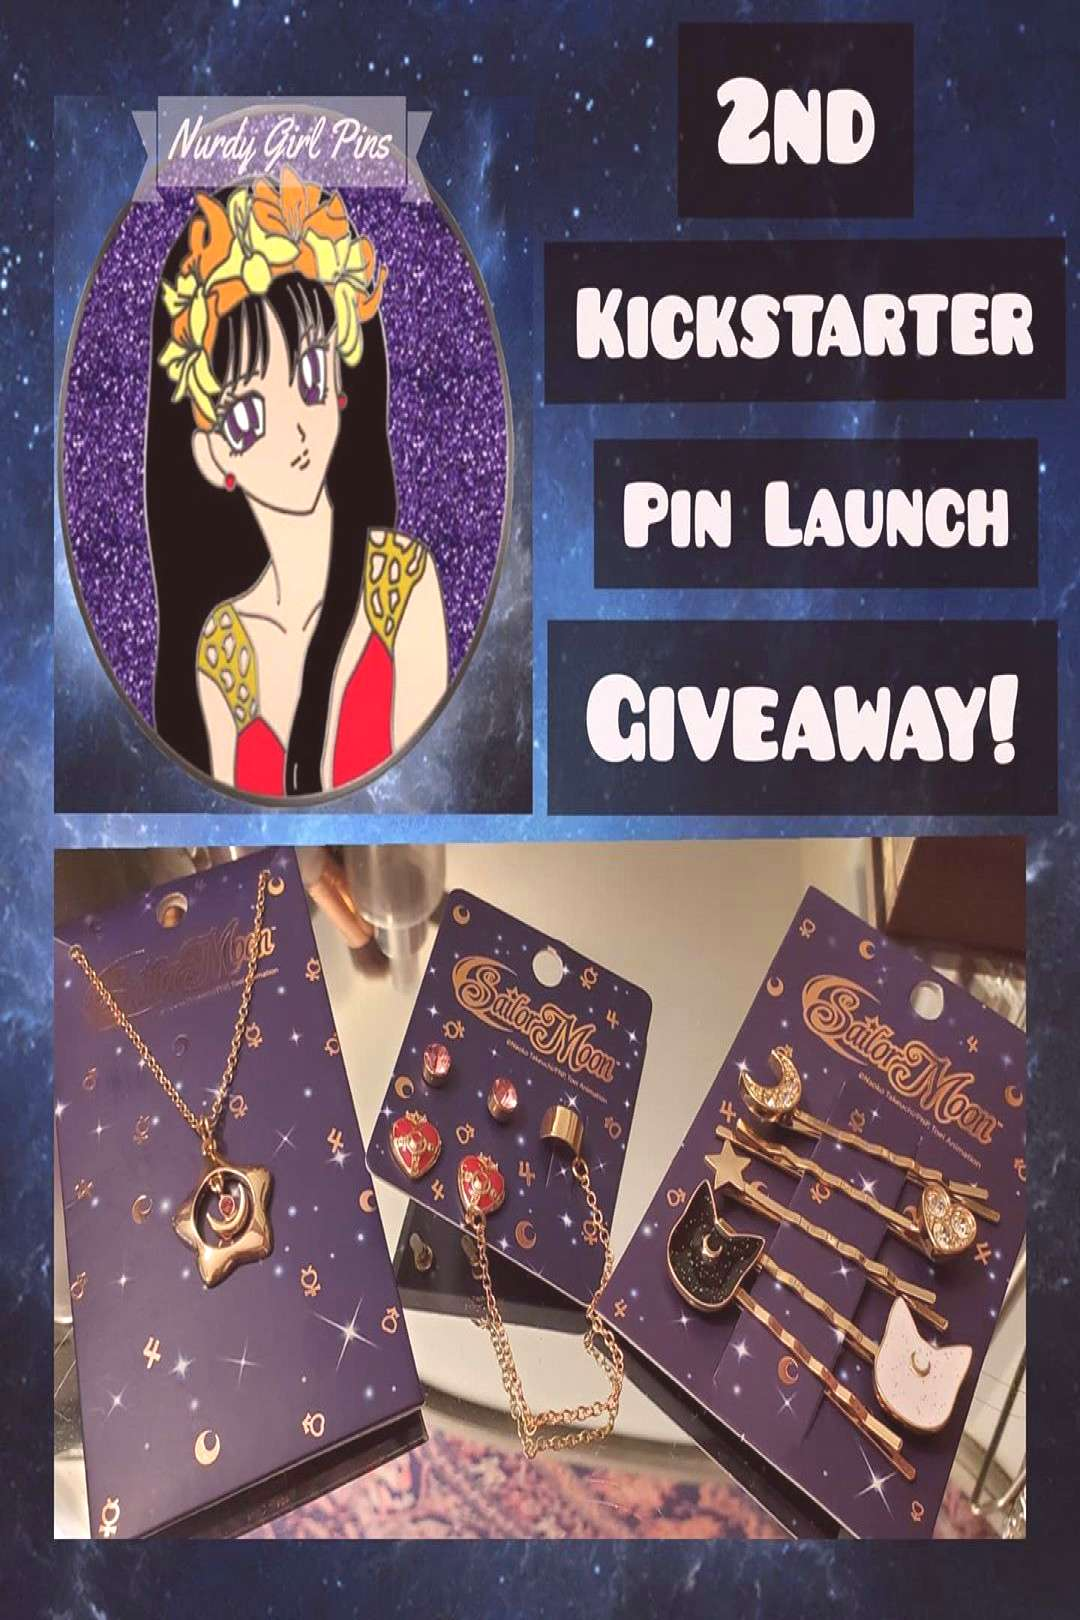 Moon Jewelry Giveaway .1 winner will get to choose 1 out of the 3